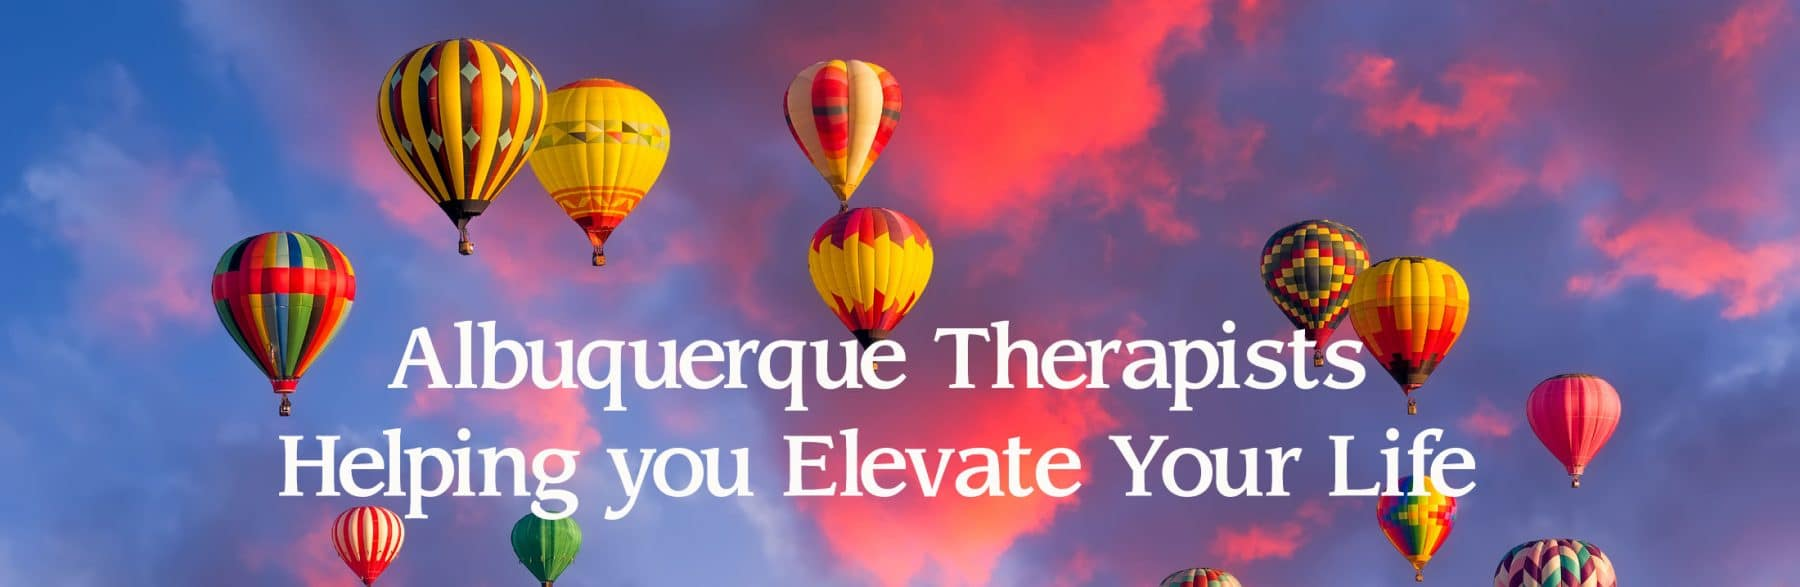 Finding the BEst Albuquerque Therapists for Your Needs